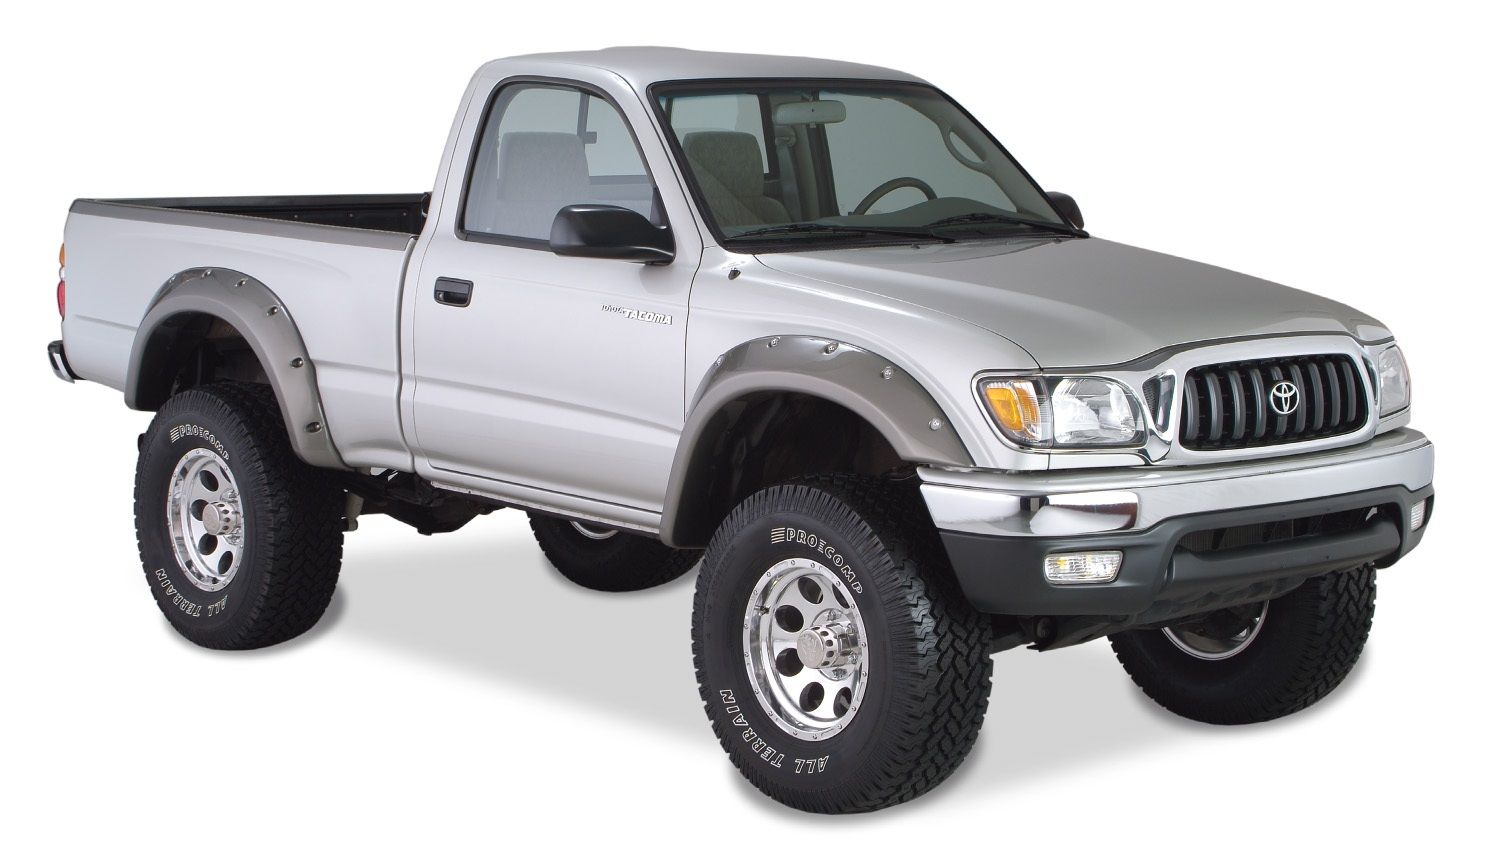 bushwacker 31919 02 cut out fender flares fits 95 04 tacoma ebay. Black Bedroom Furniture Sets. Home Design Ideas